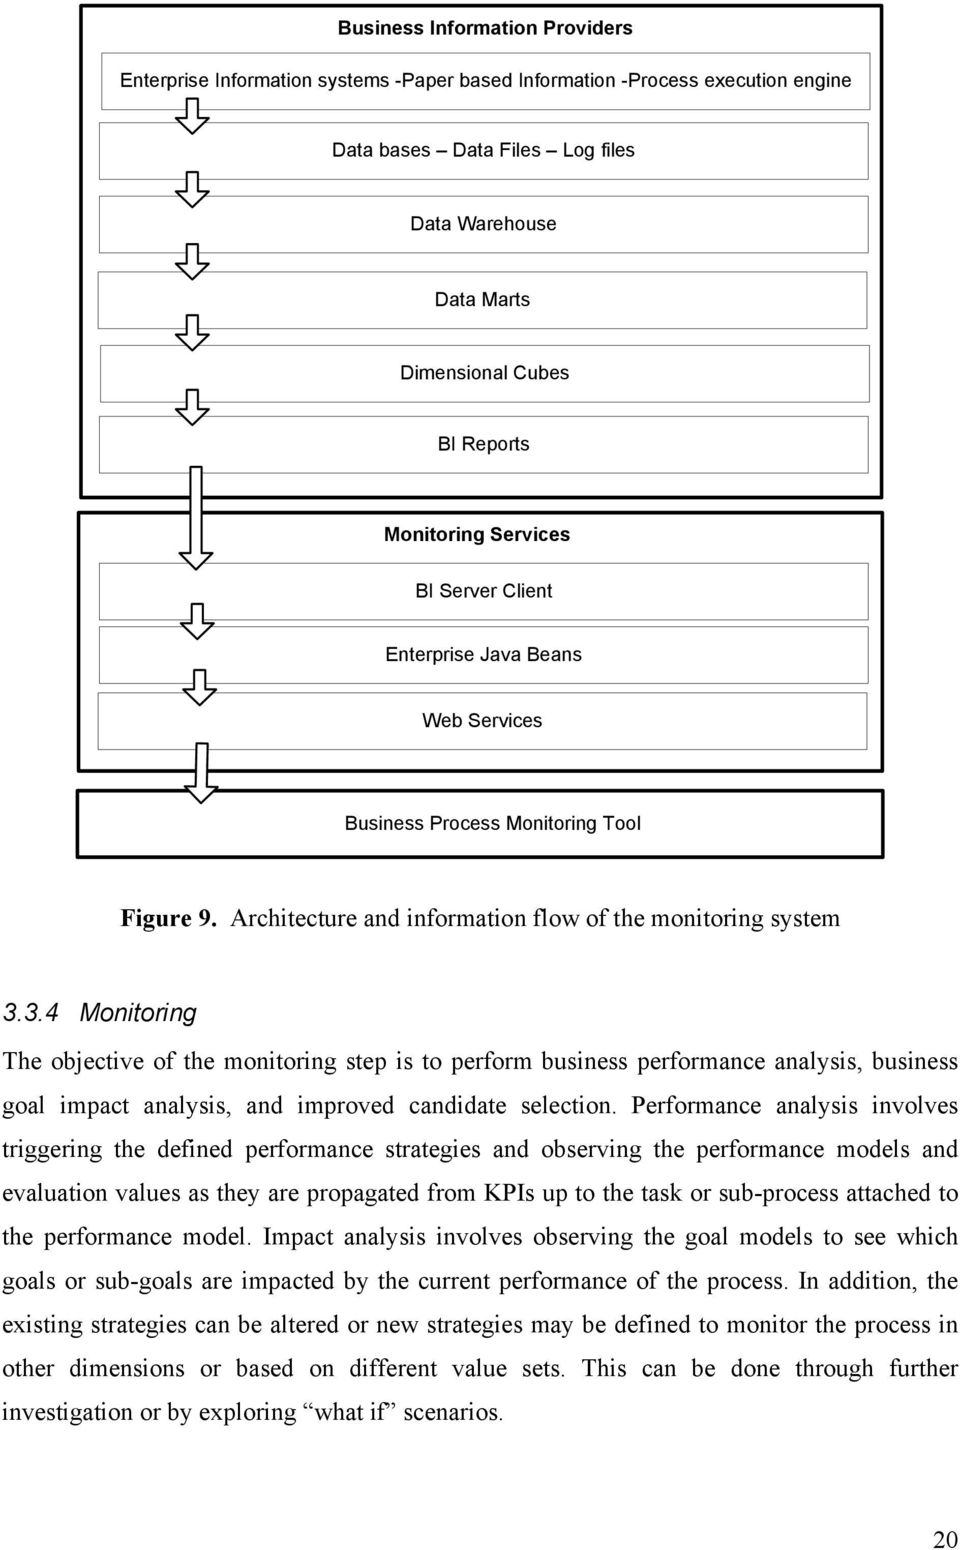 3.4 Monitoring The objective of the monitoring step is to perform business performance analysis, business goal impact analysis, and improved candidate selection.